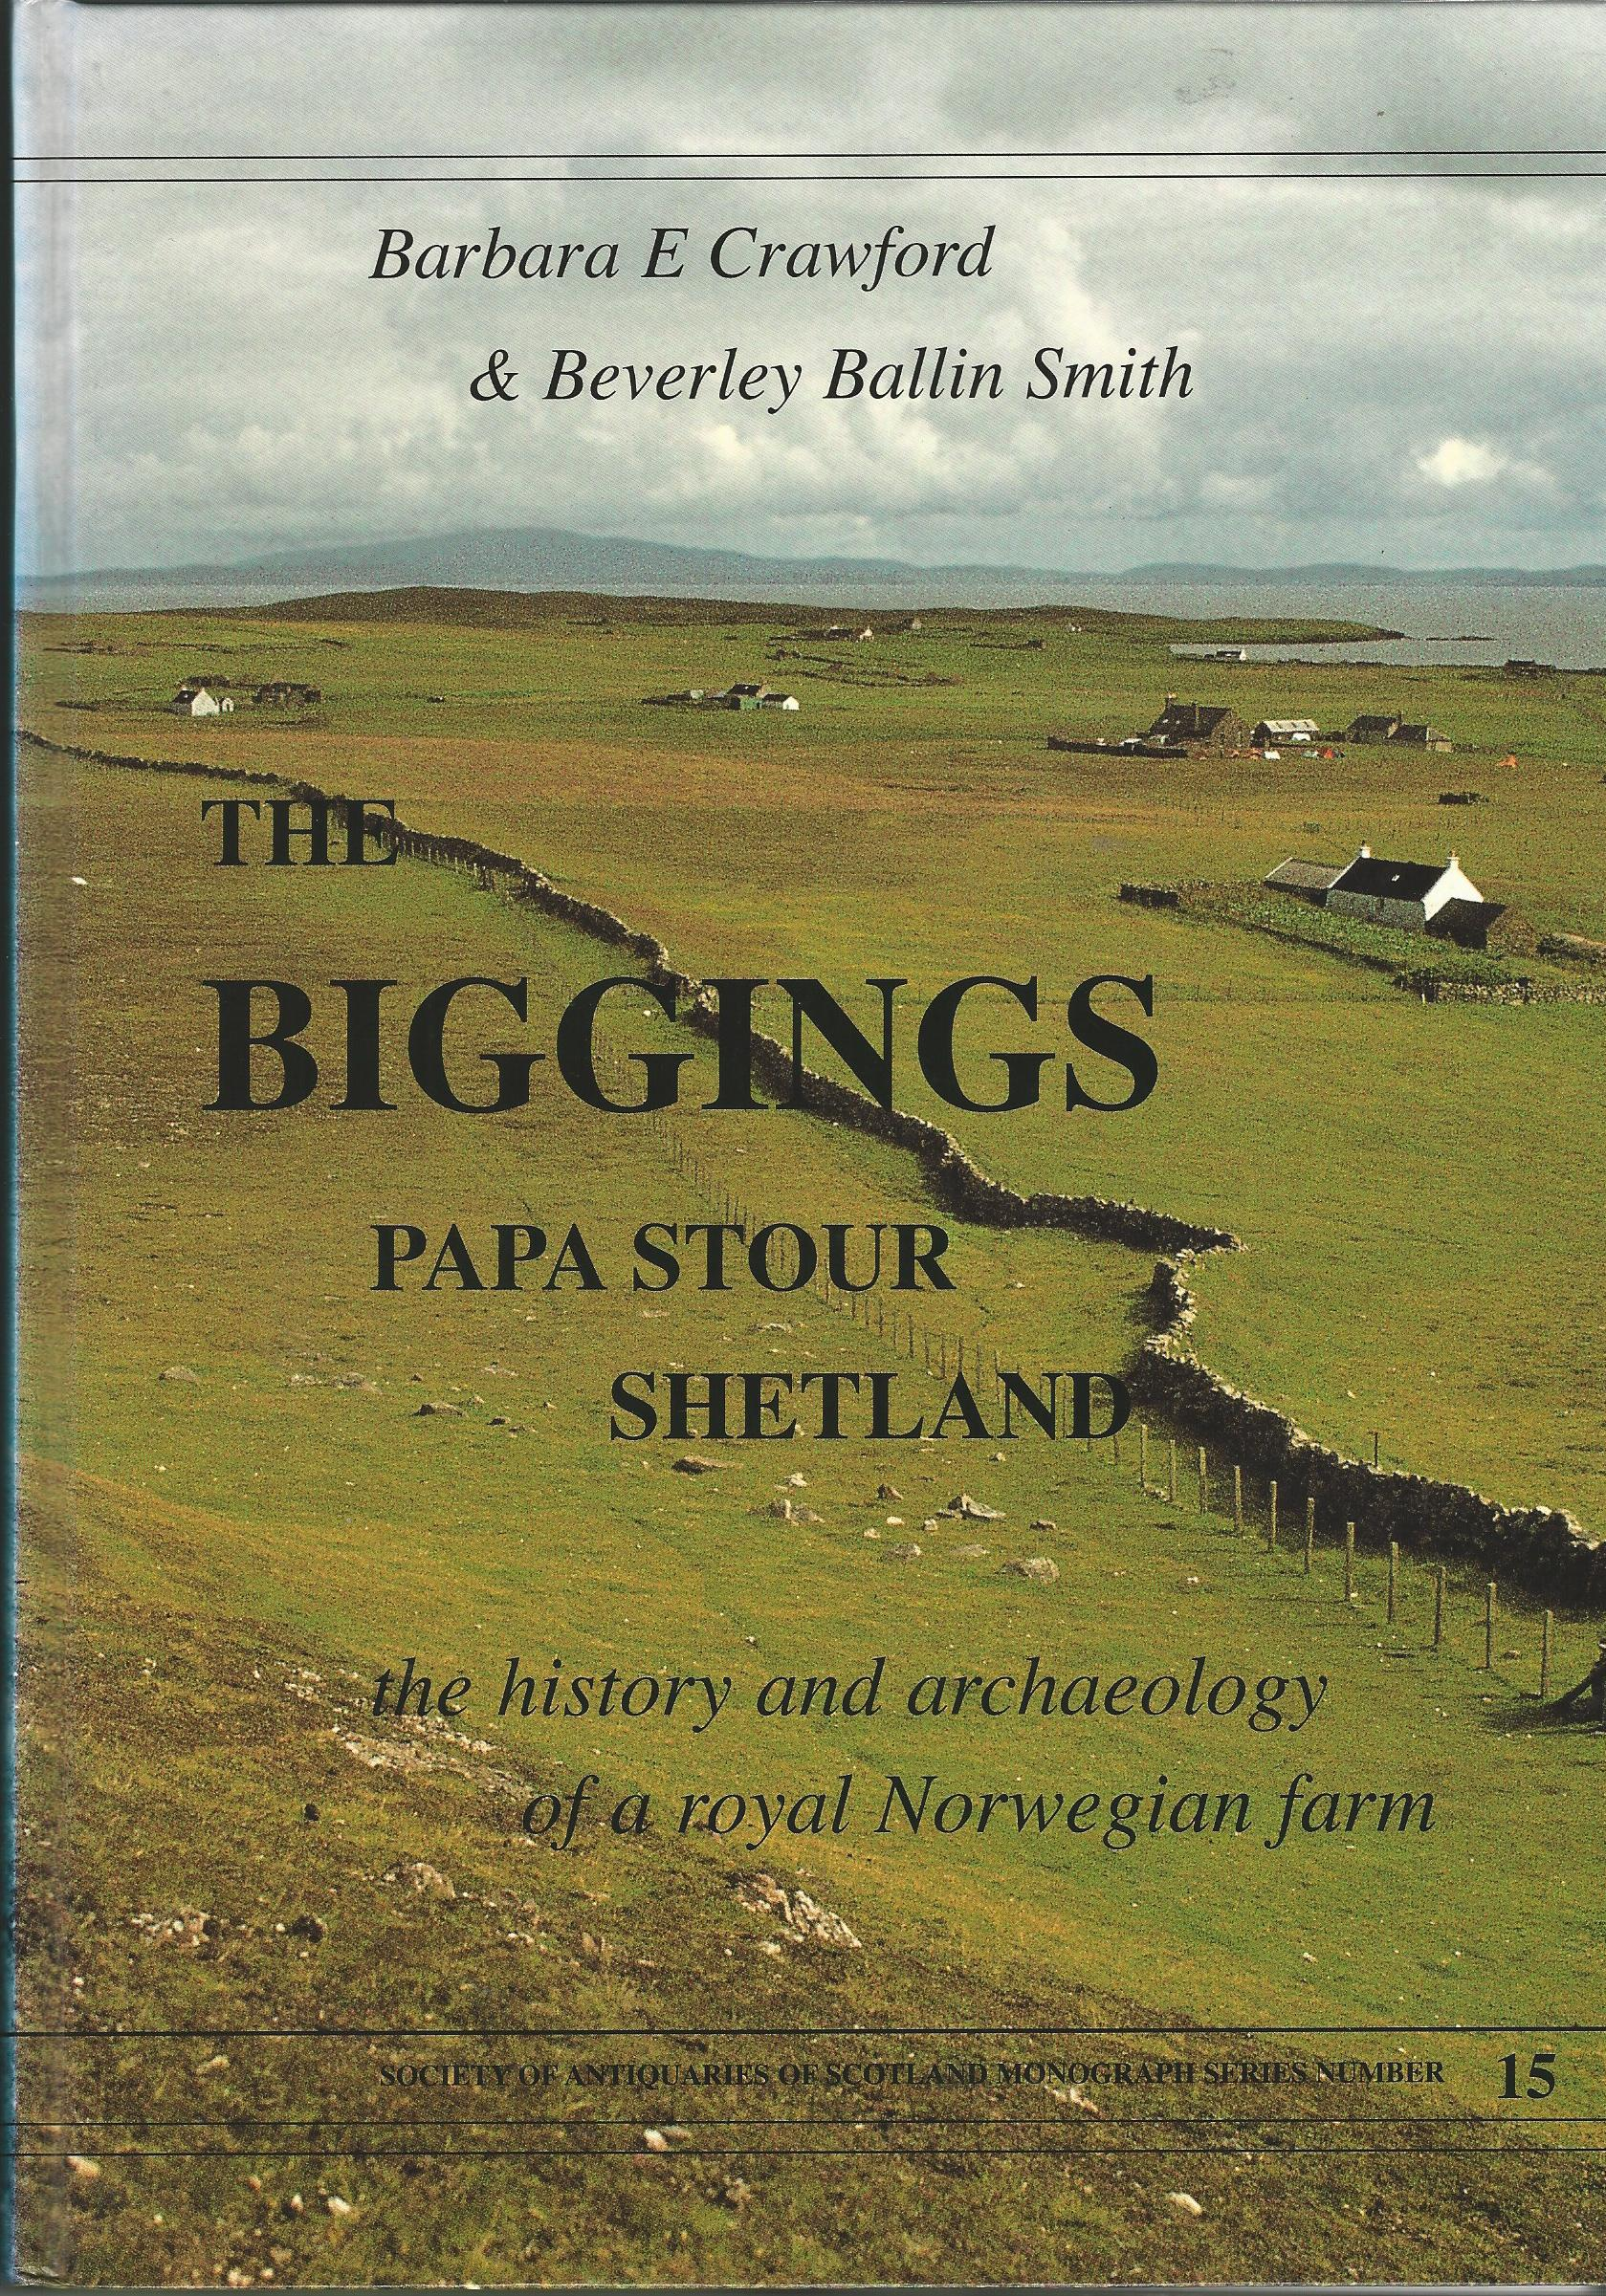 Image for The Biggings, Papa Stour, Shetland the History and Archaeololgy of a Royal Norwegian Farm: The History and Excavation of a Royal Norwegian Farm